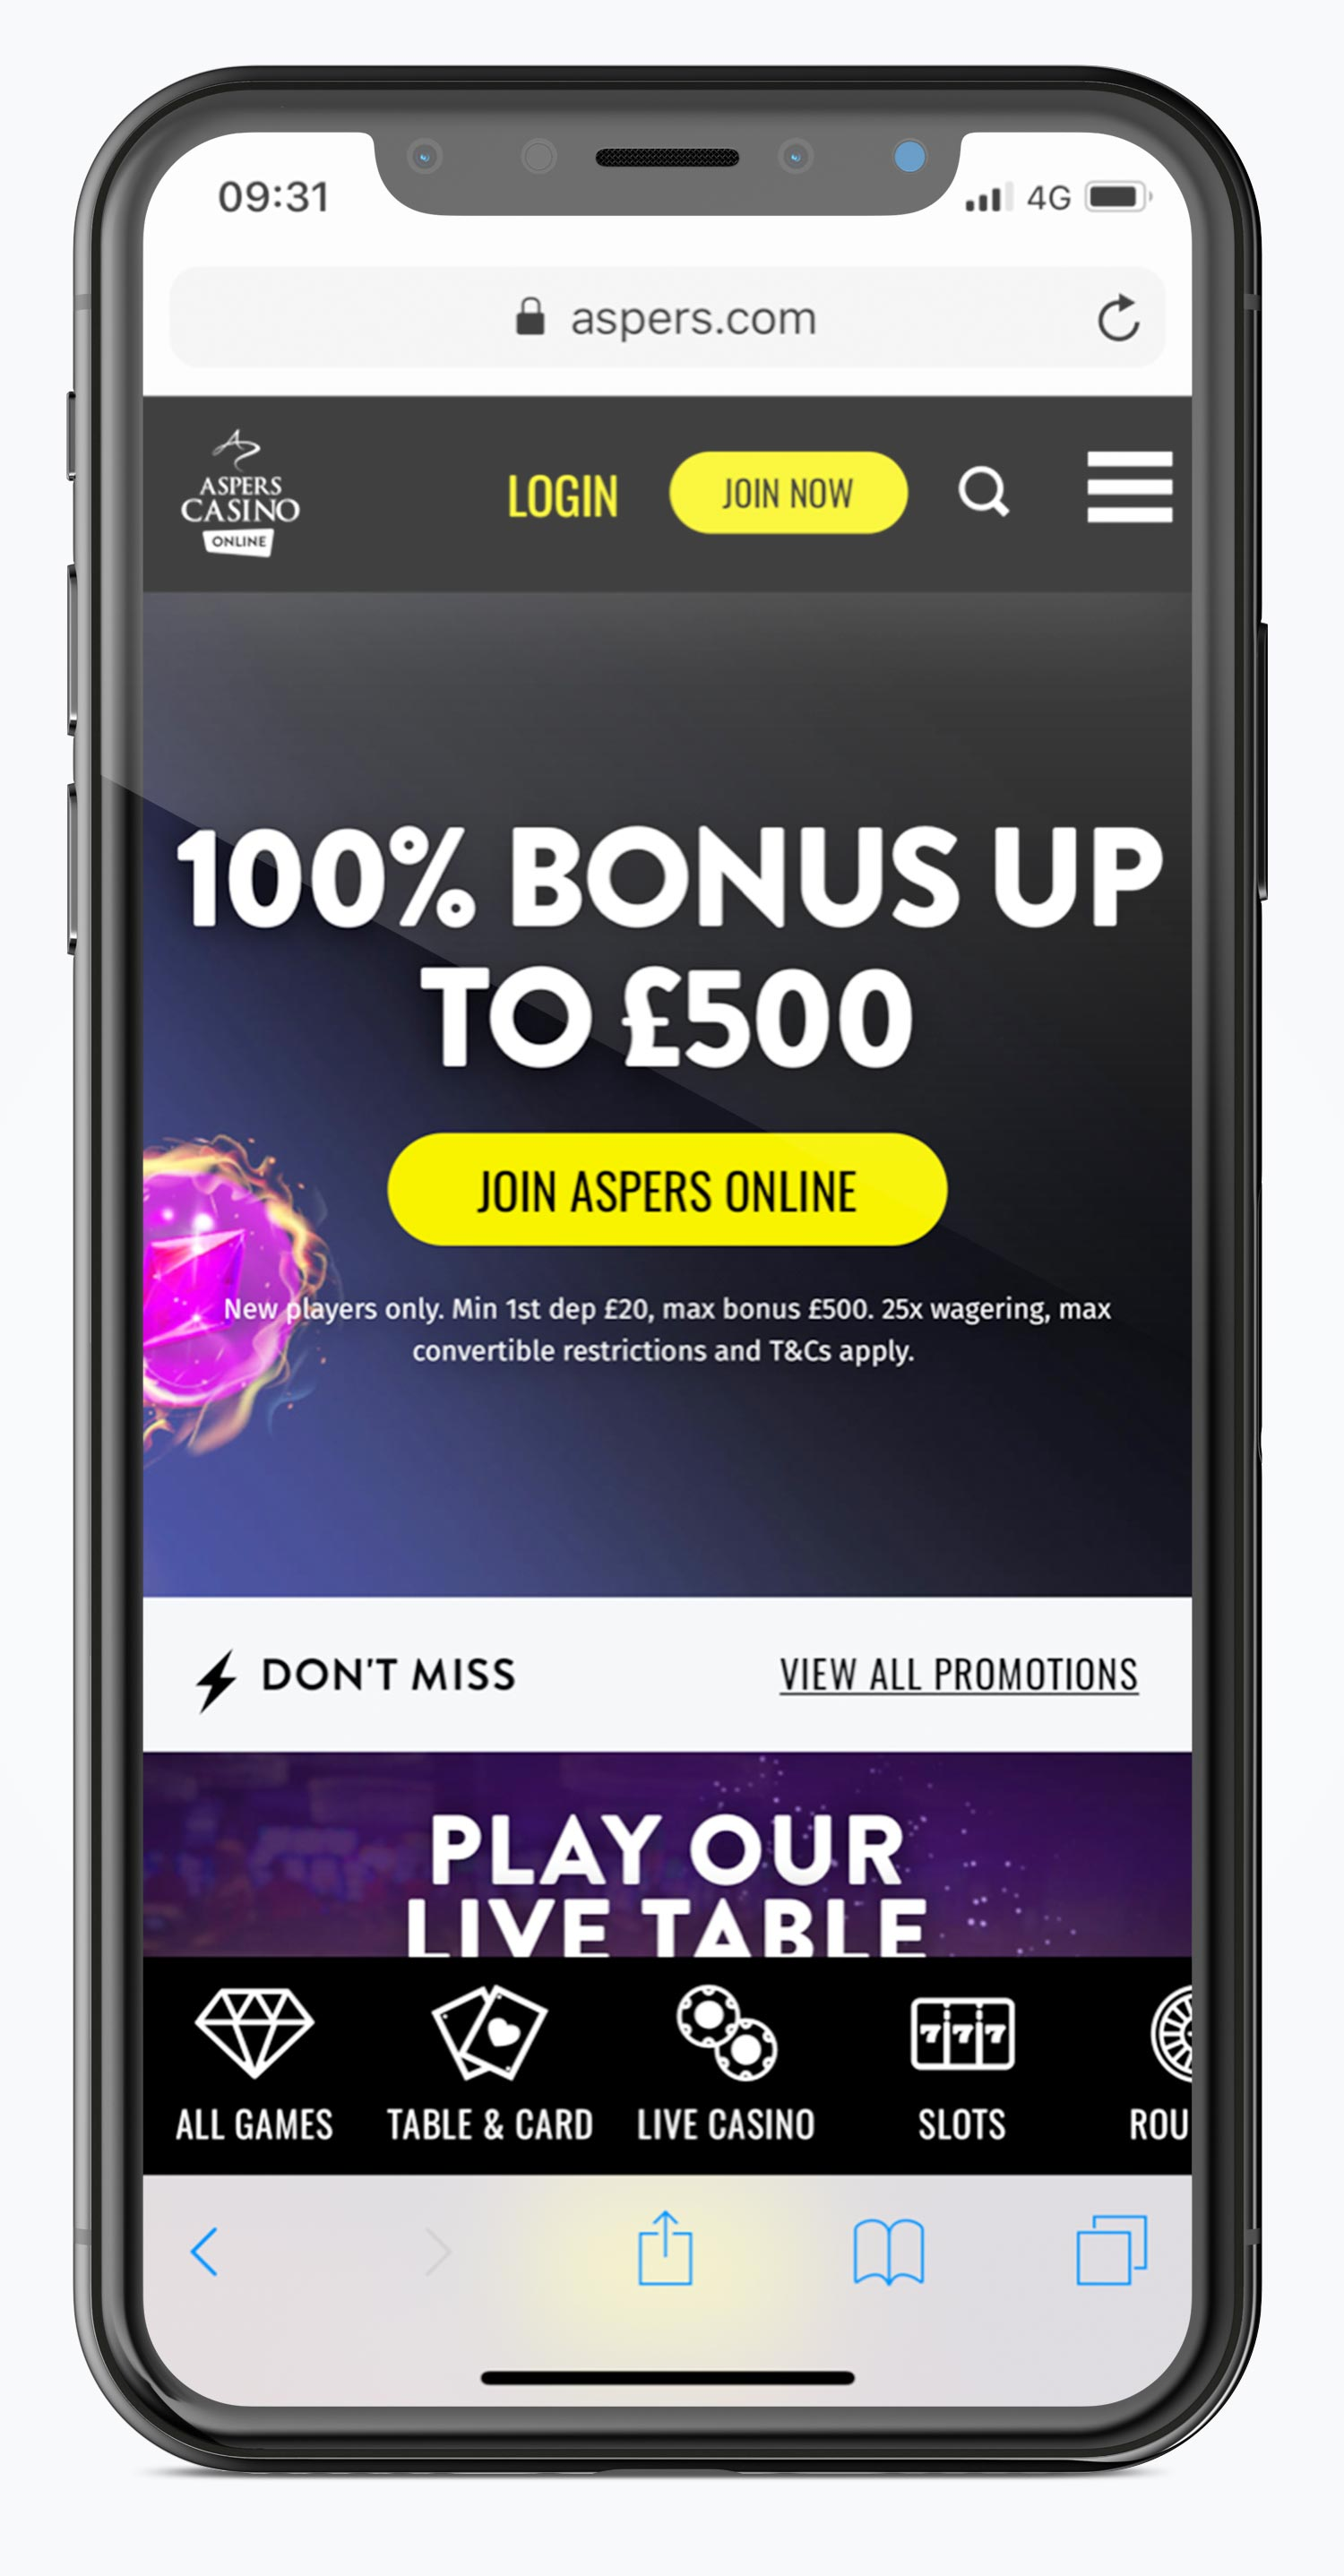 Aspers welcome offer